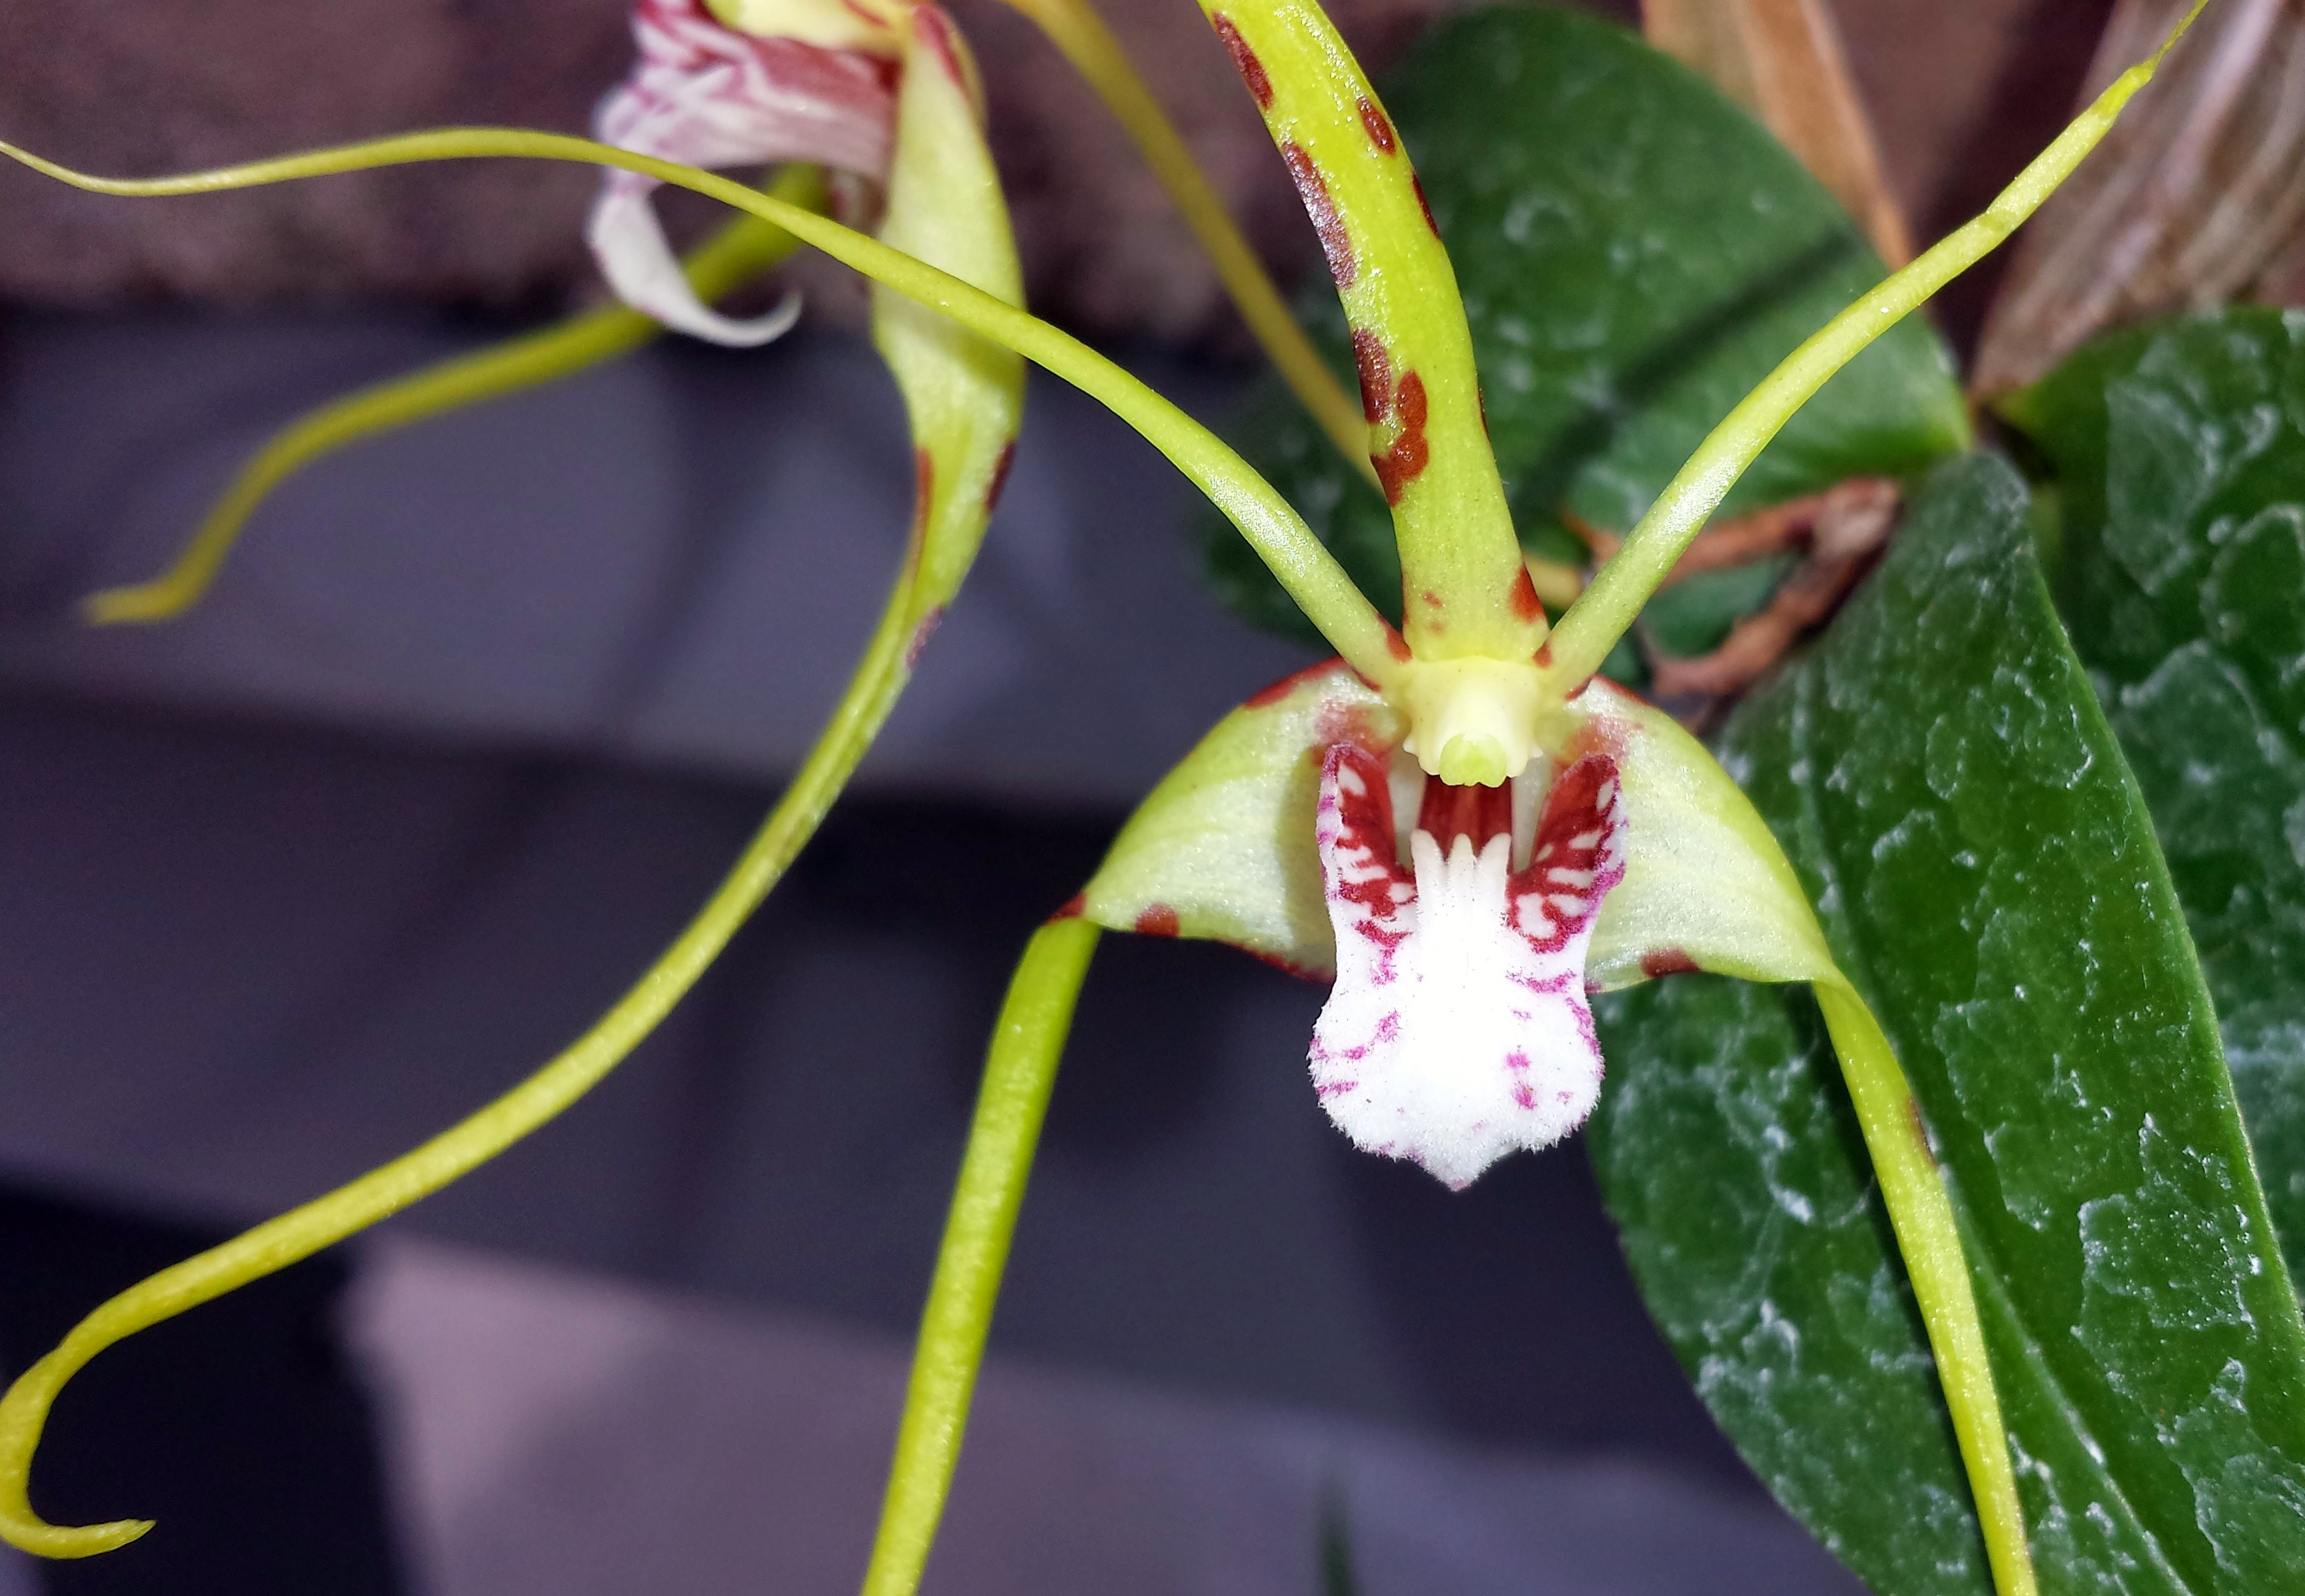 How to water orchids at home: just about the complex